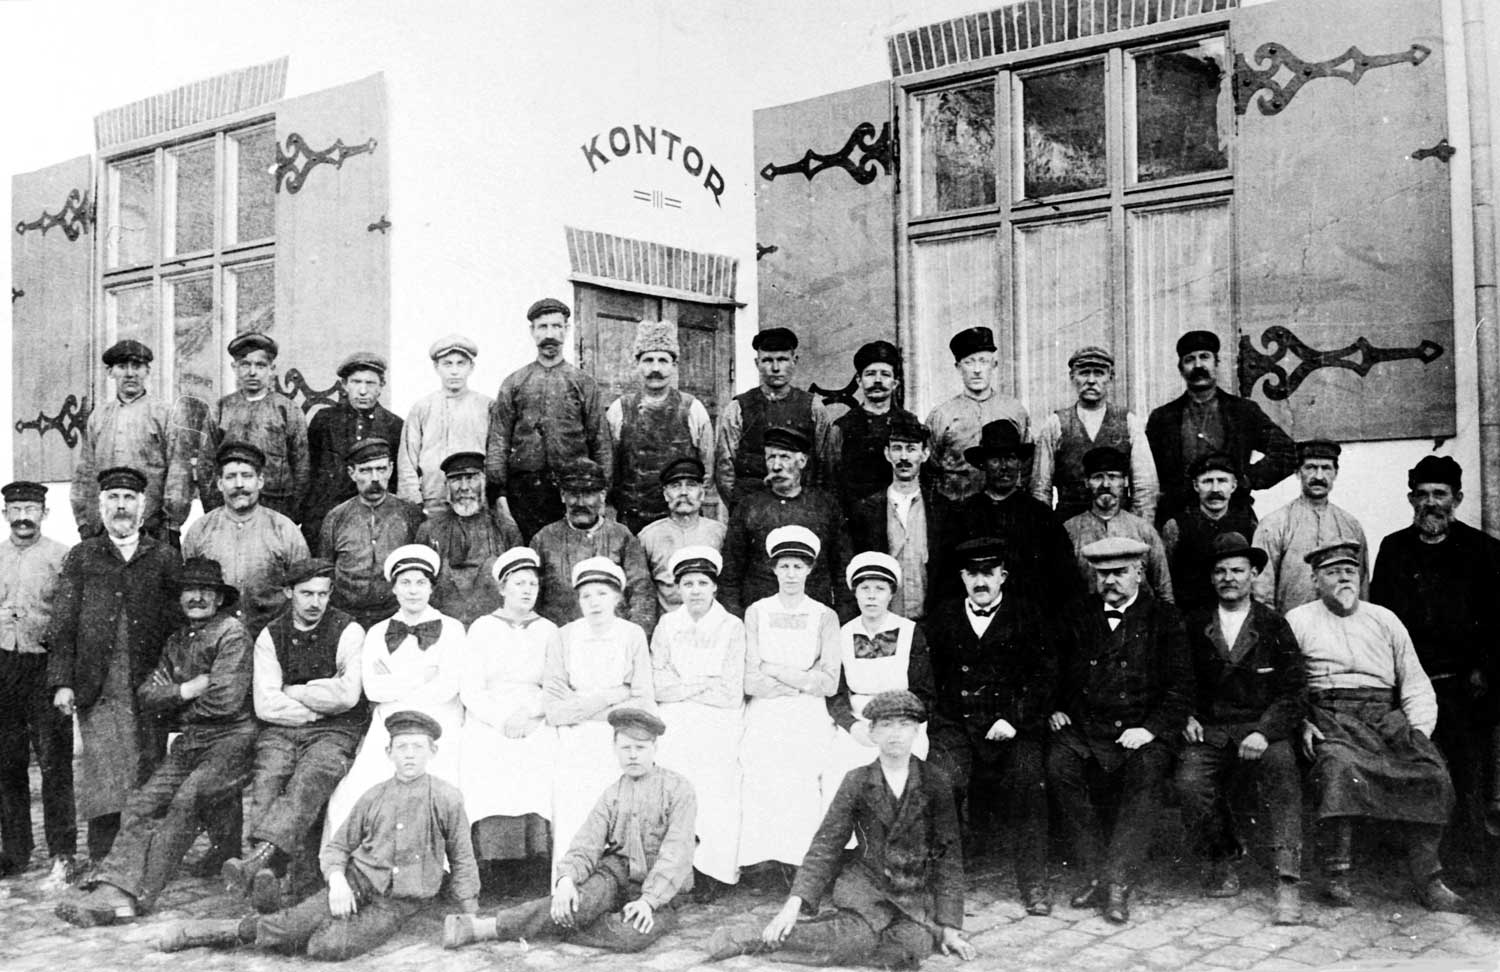 Jästbolaget's staff in the early 1900s